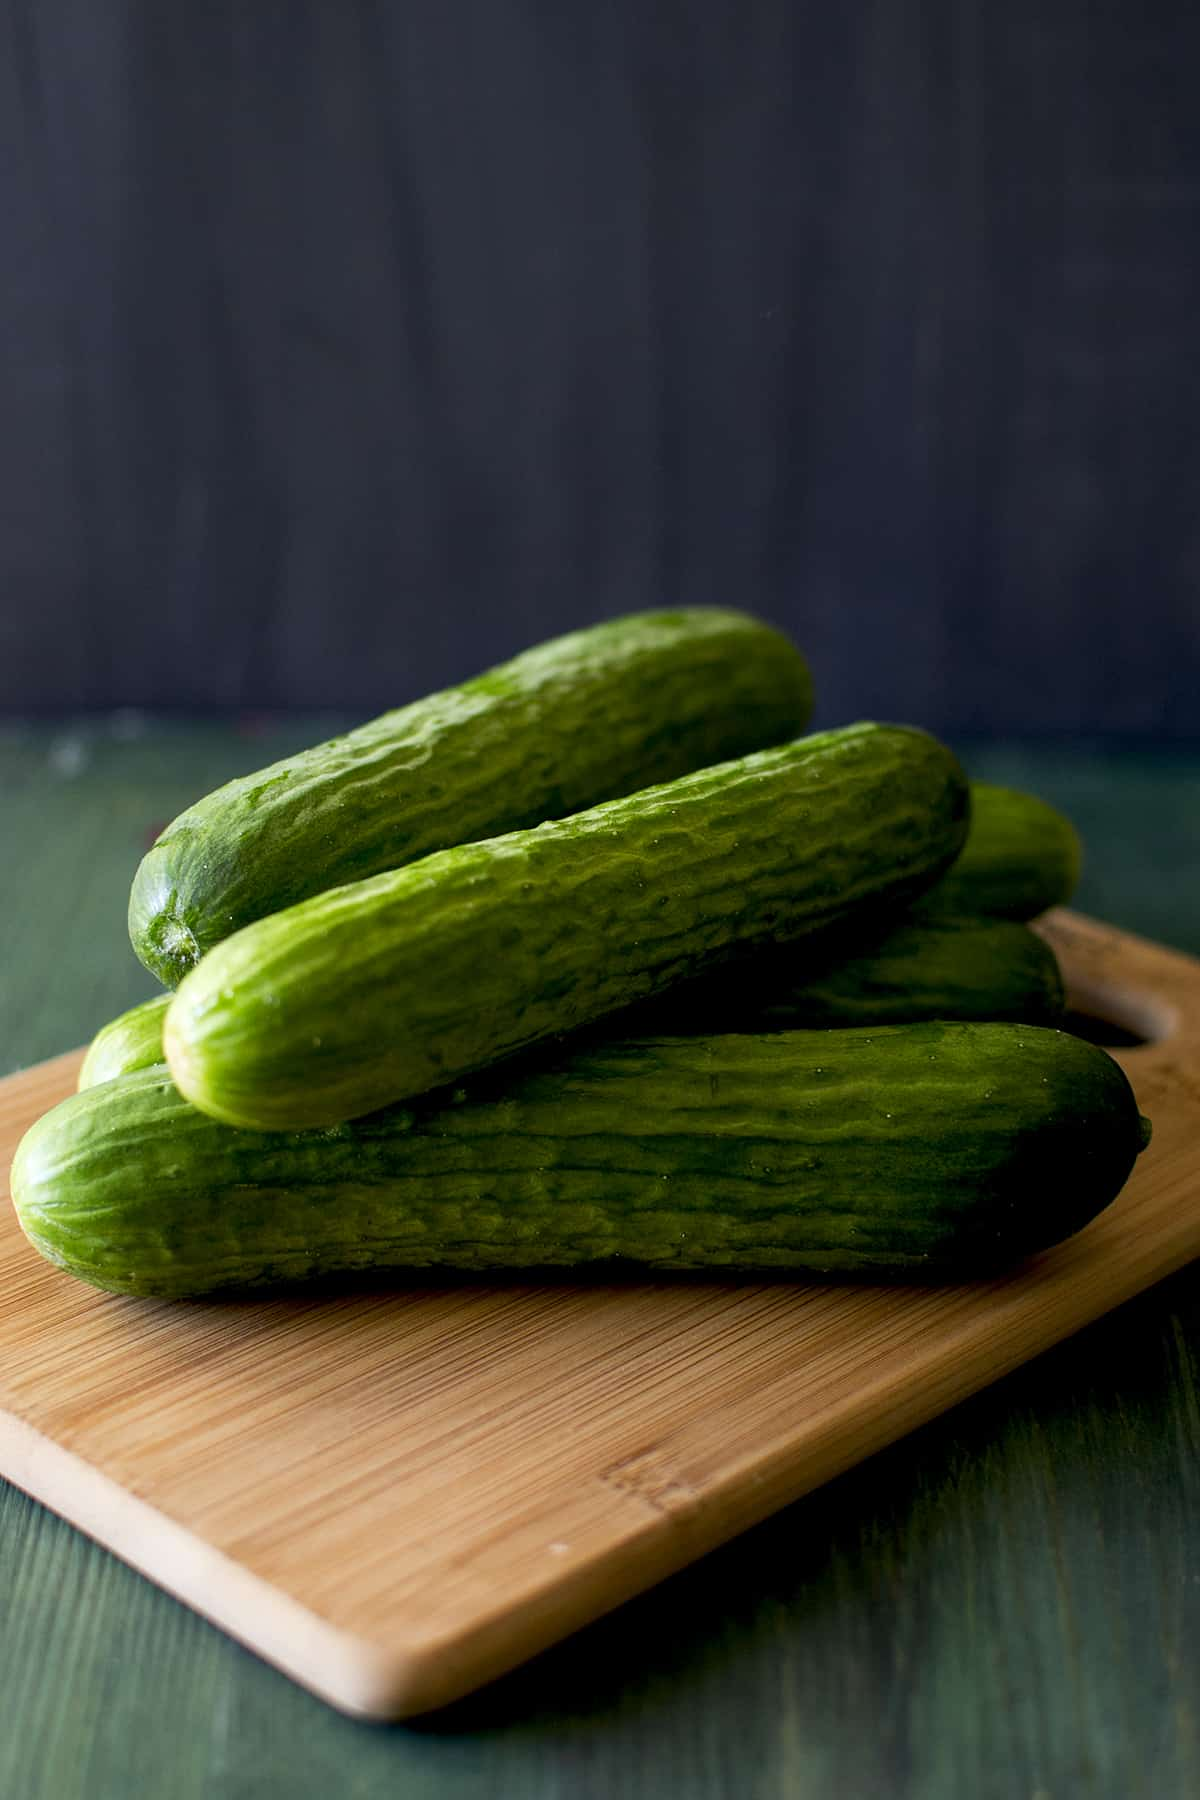 chopping board with fresh Persian cukes